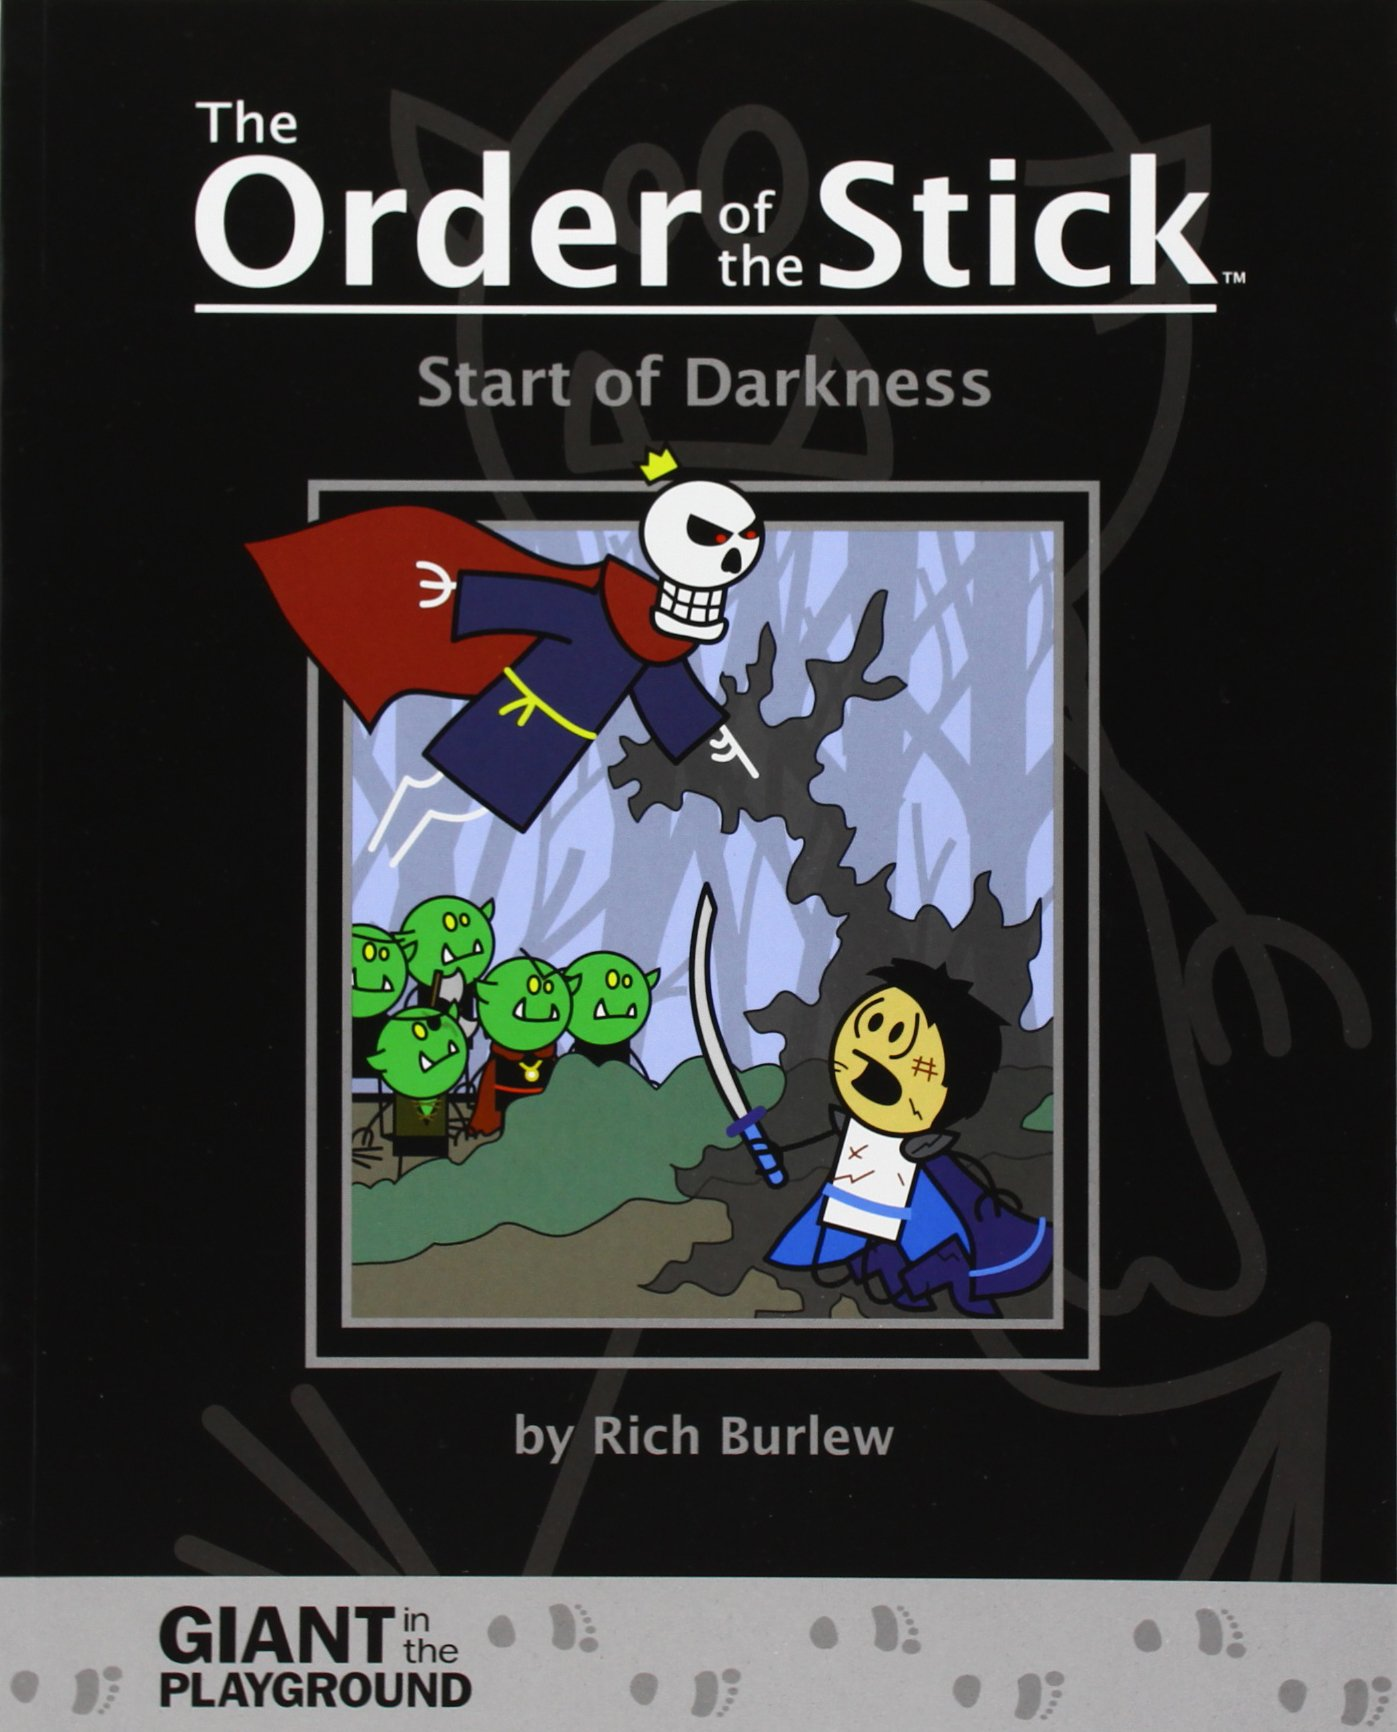 The Order of the Stick - Start of Darkness